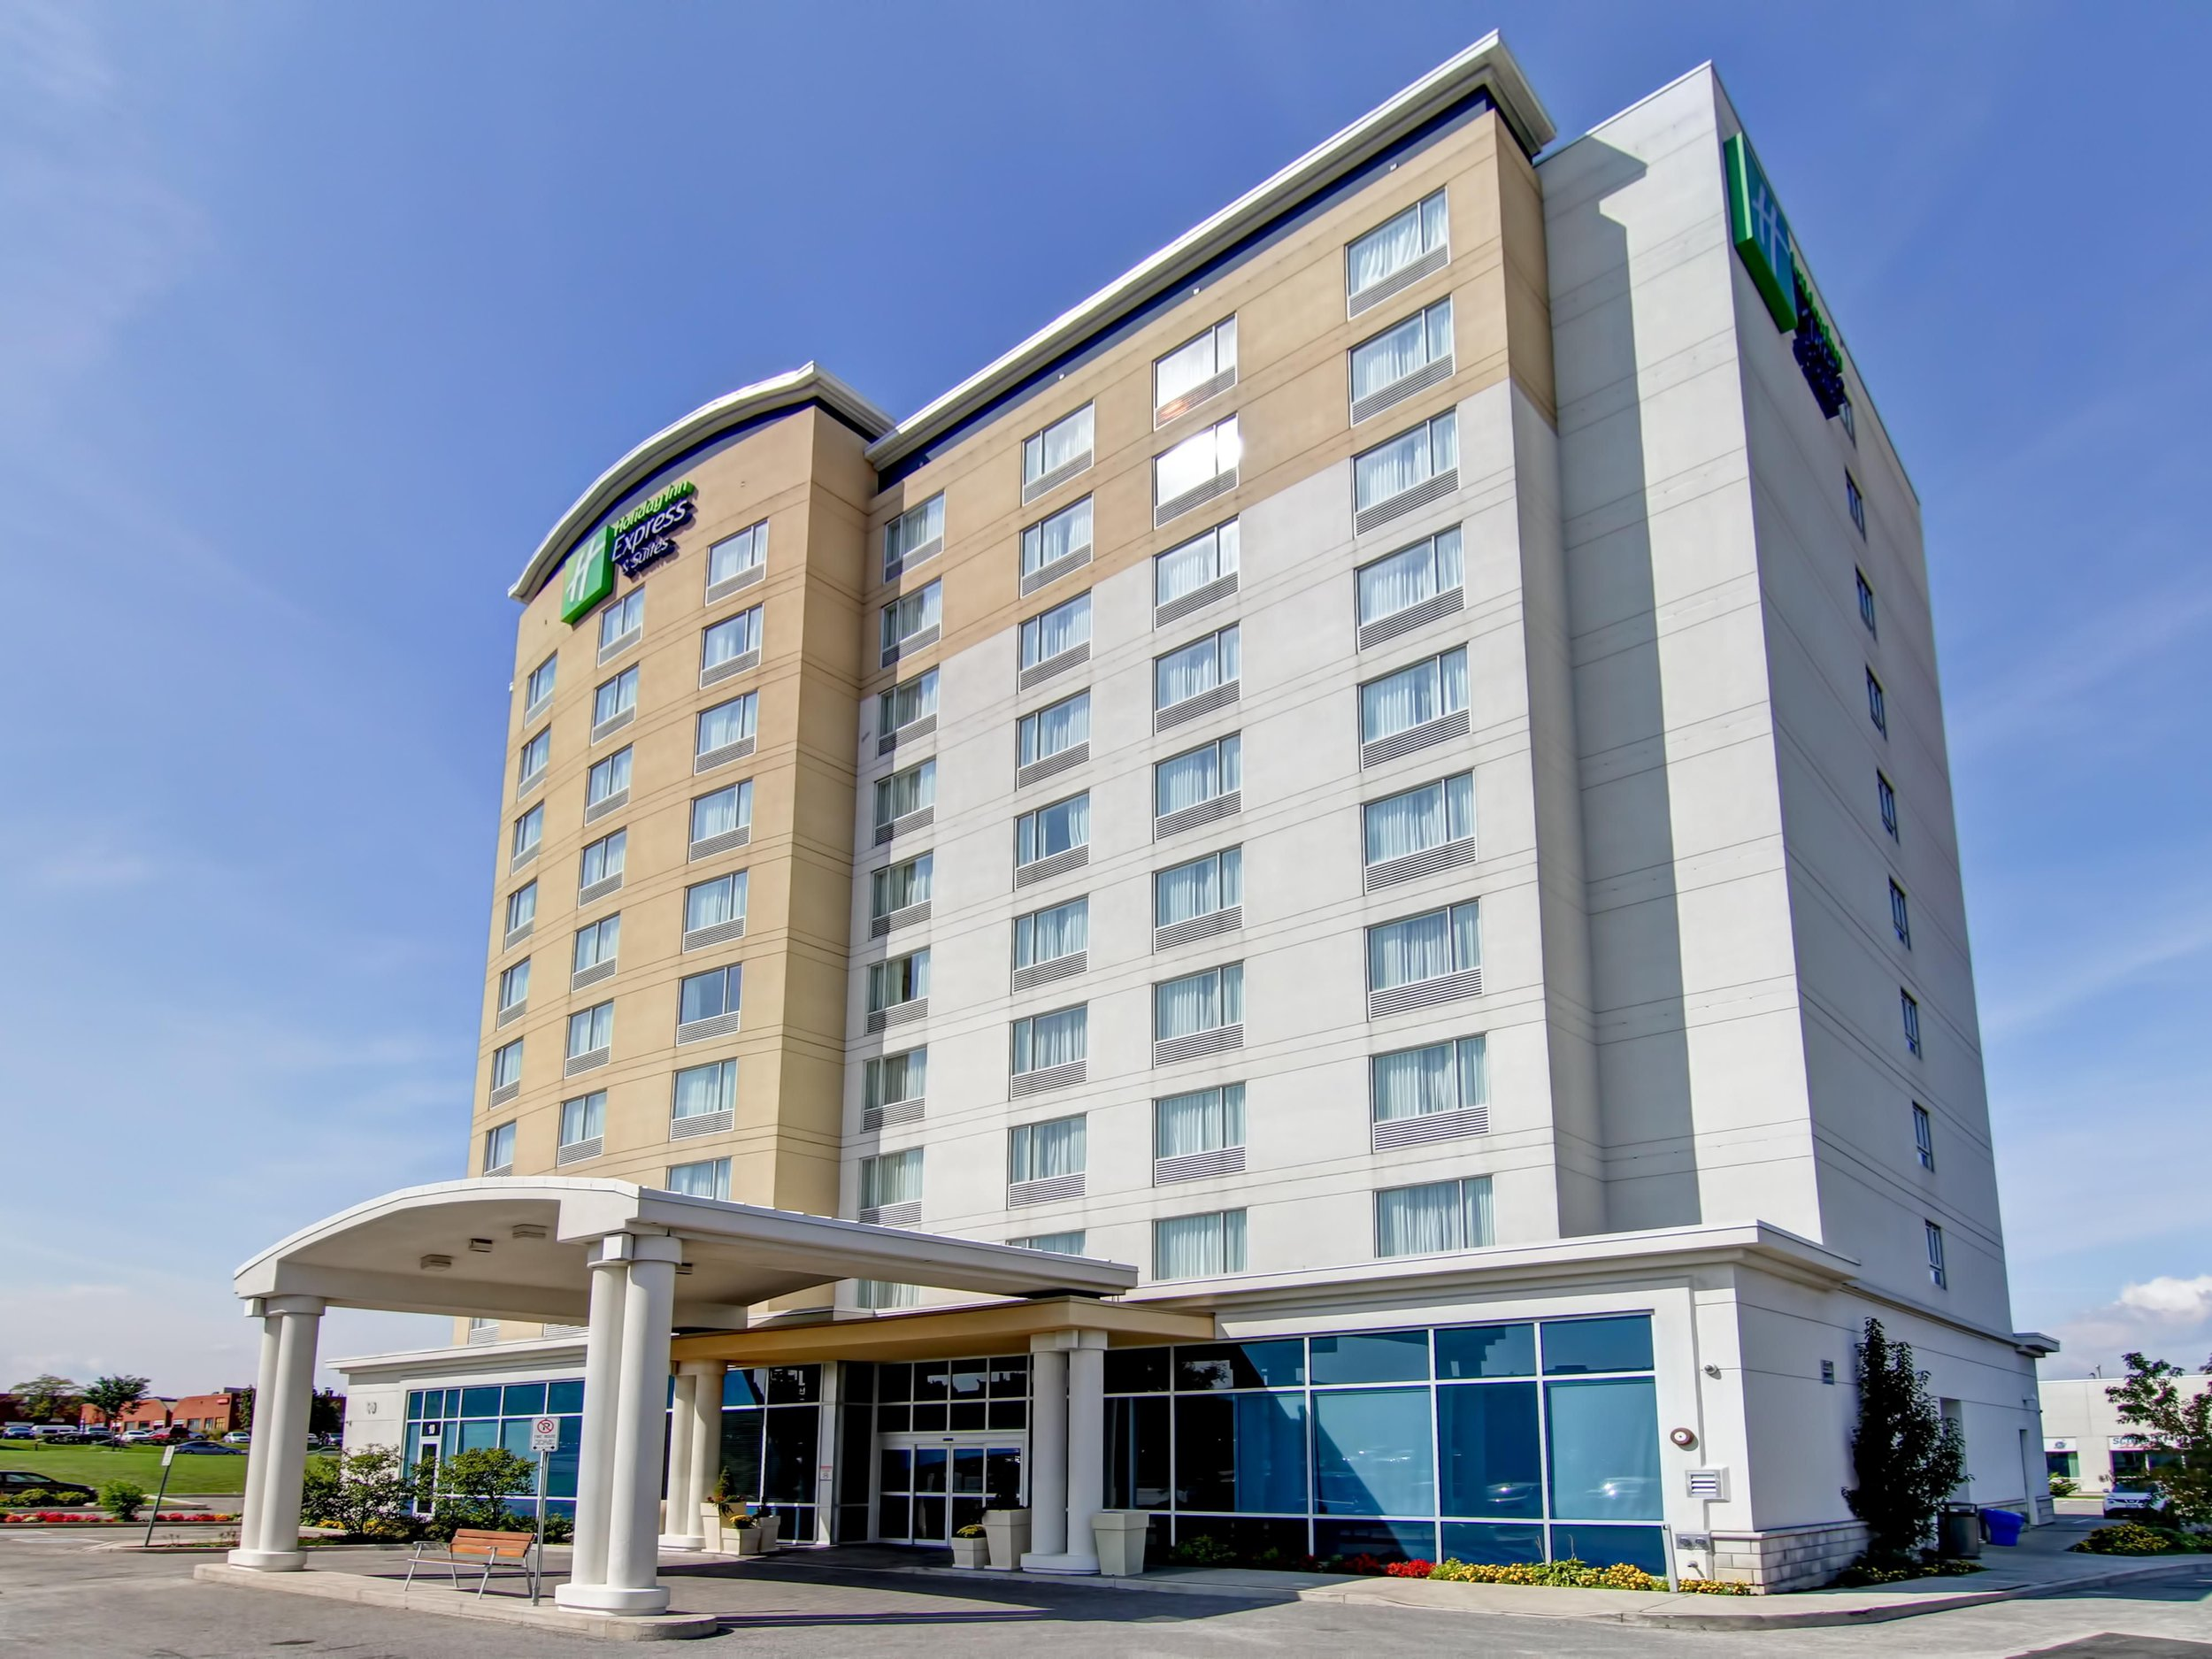 holiday-inn-express-and-suites-richmond-hill-4175834058-4x3.jpeg